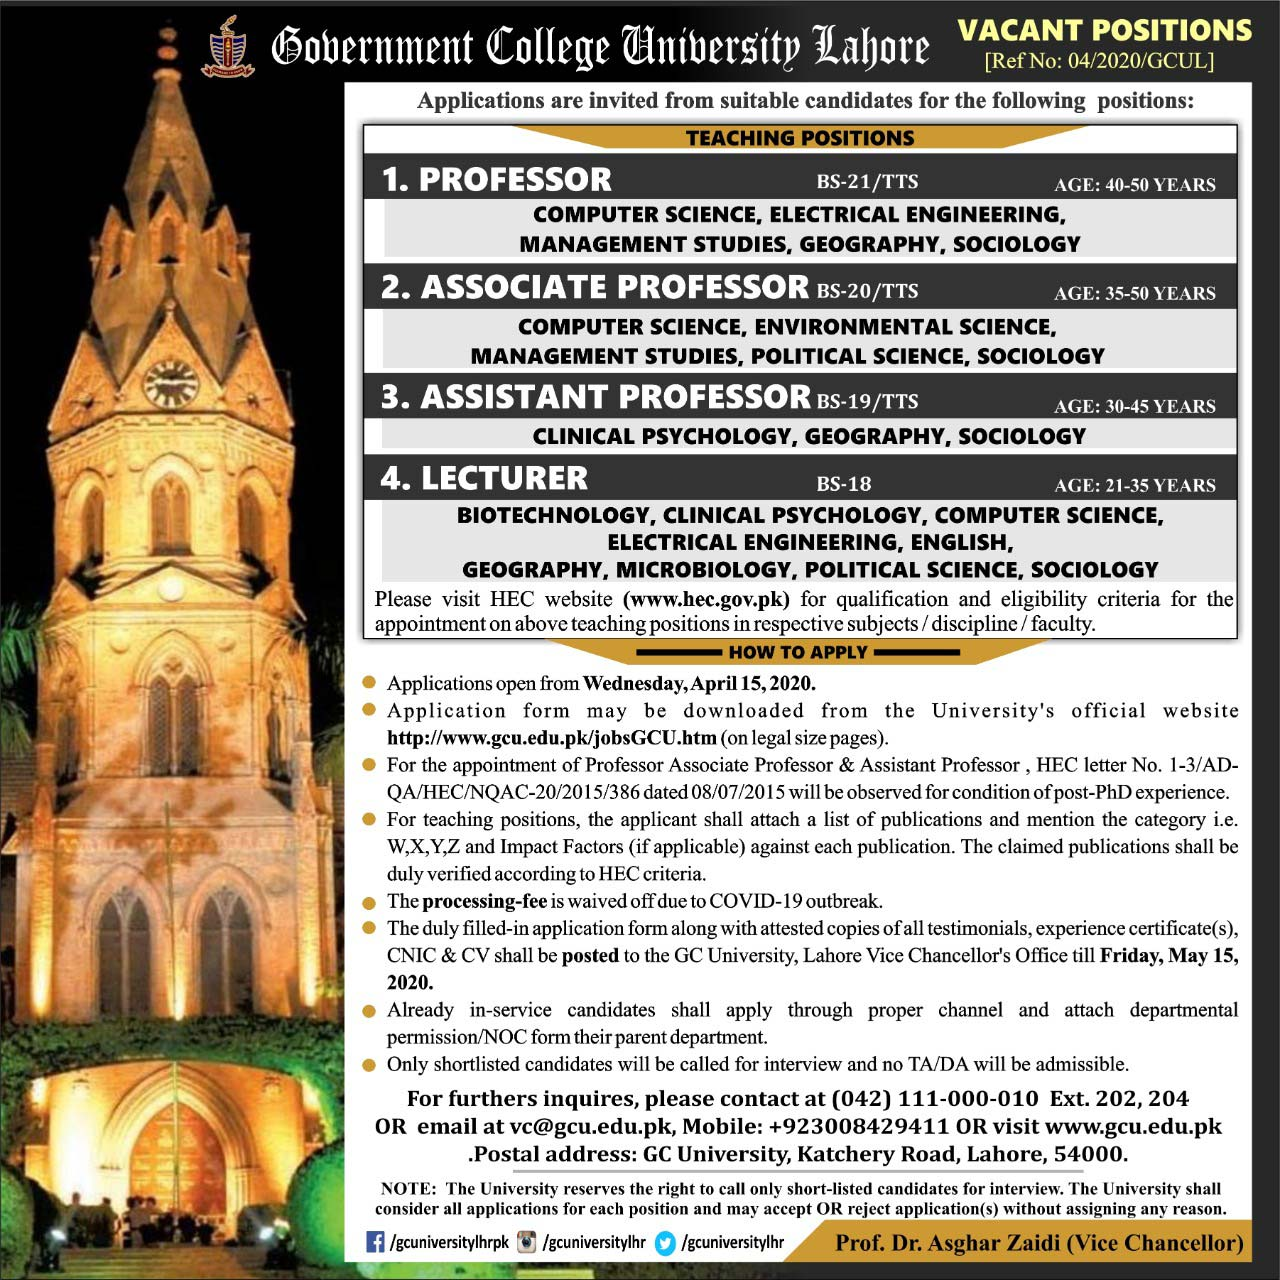 Government College University Lahore Gcul Jobs 2020 Latest Teaching Faculty